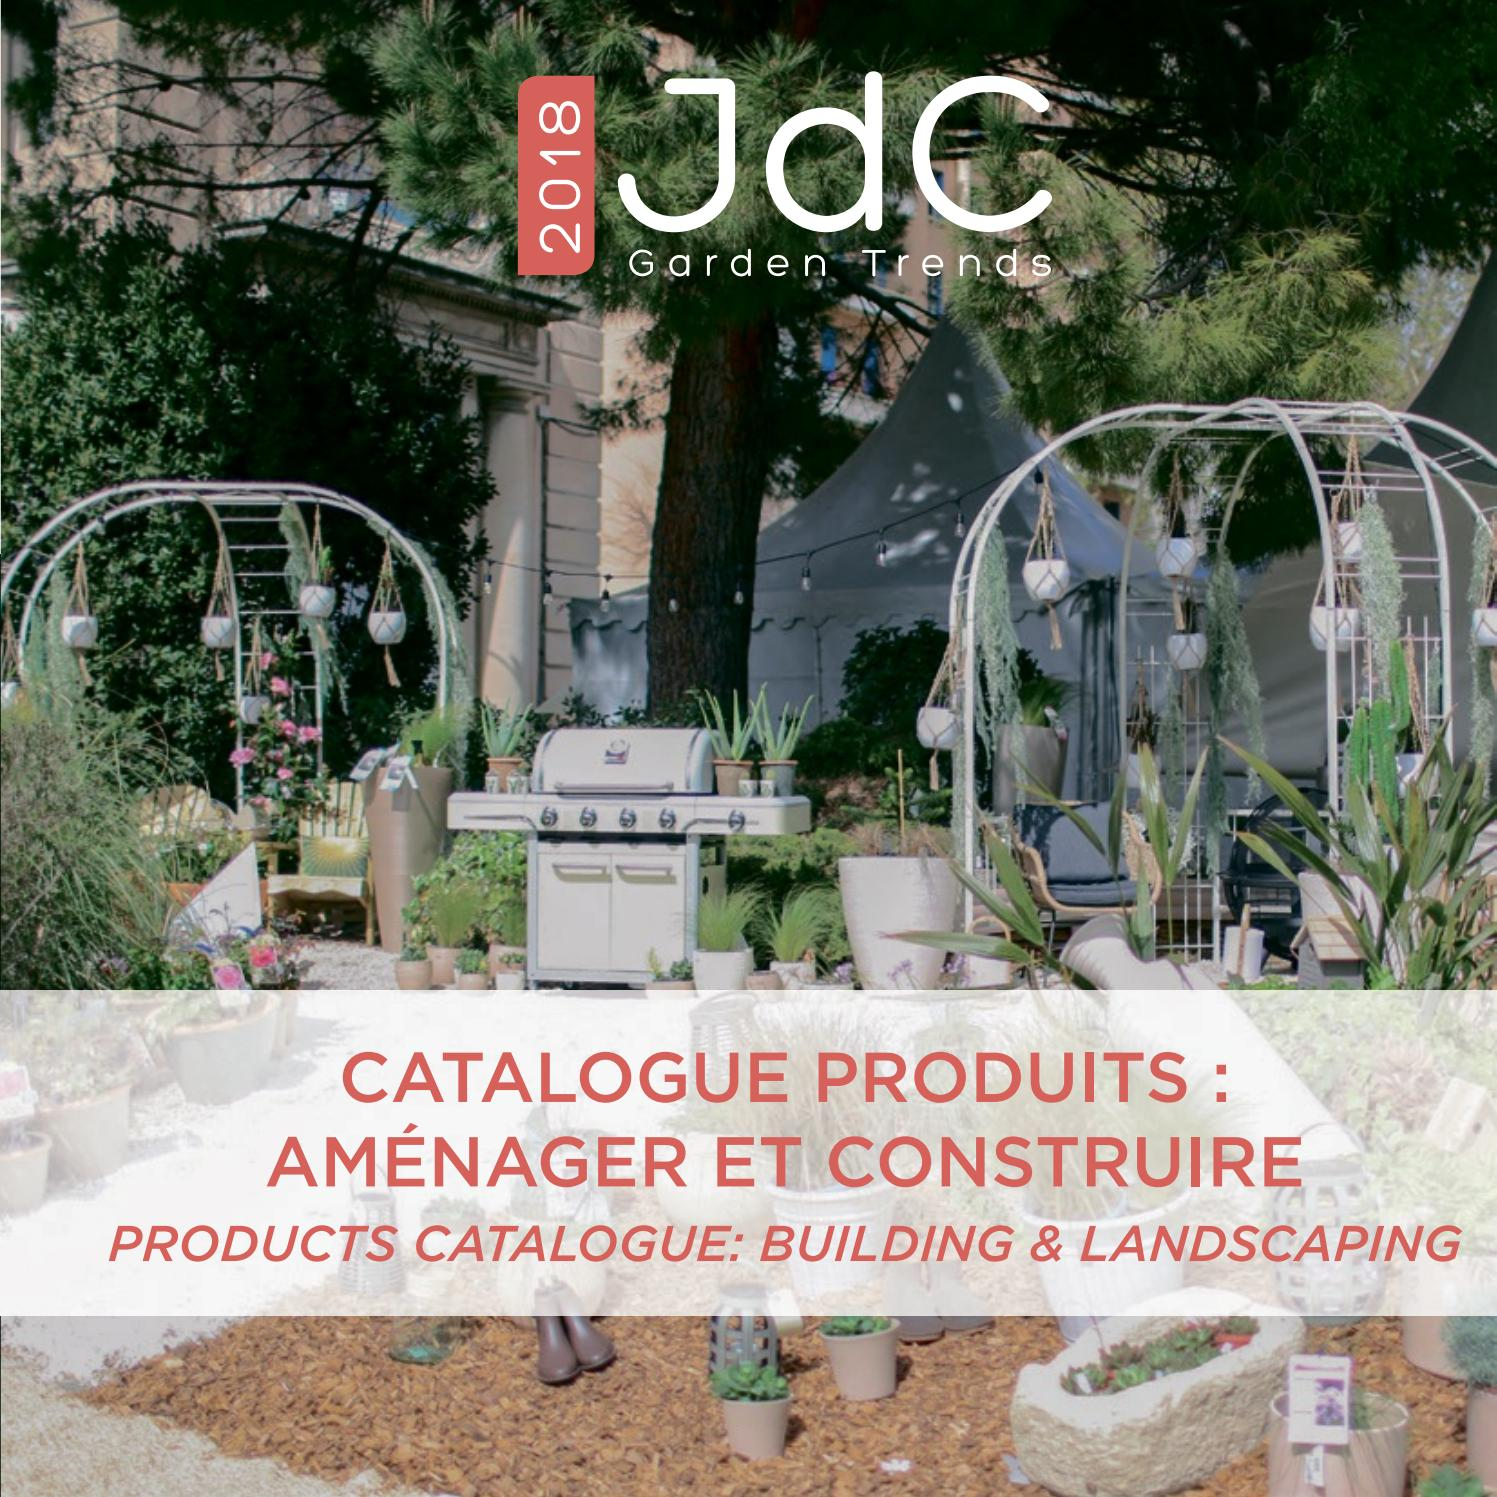 Jdc jardin 2018 e catalogue amenager by INFOPRO DIGITAL - issuu